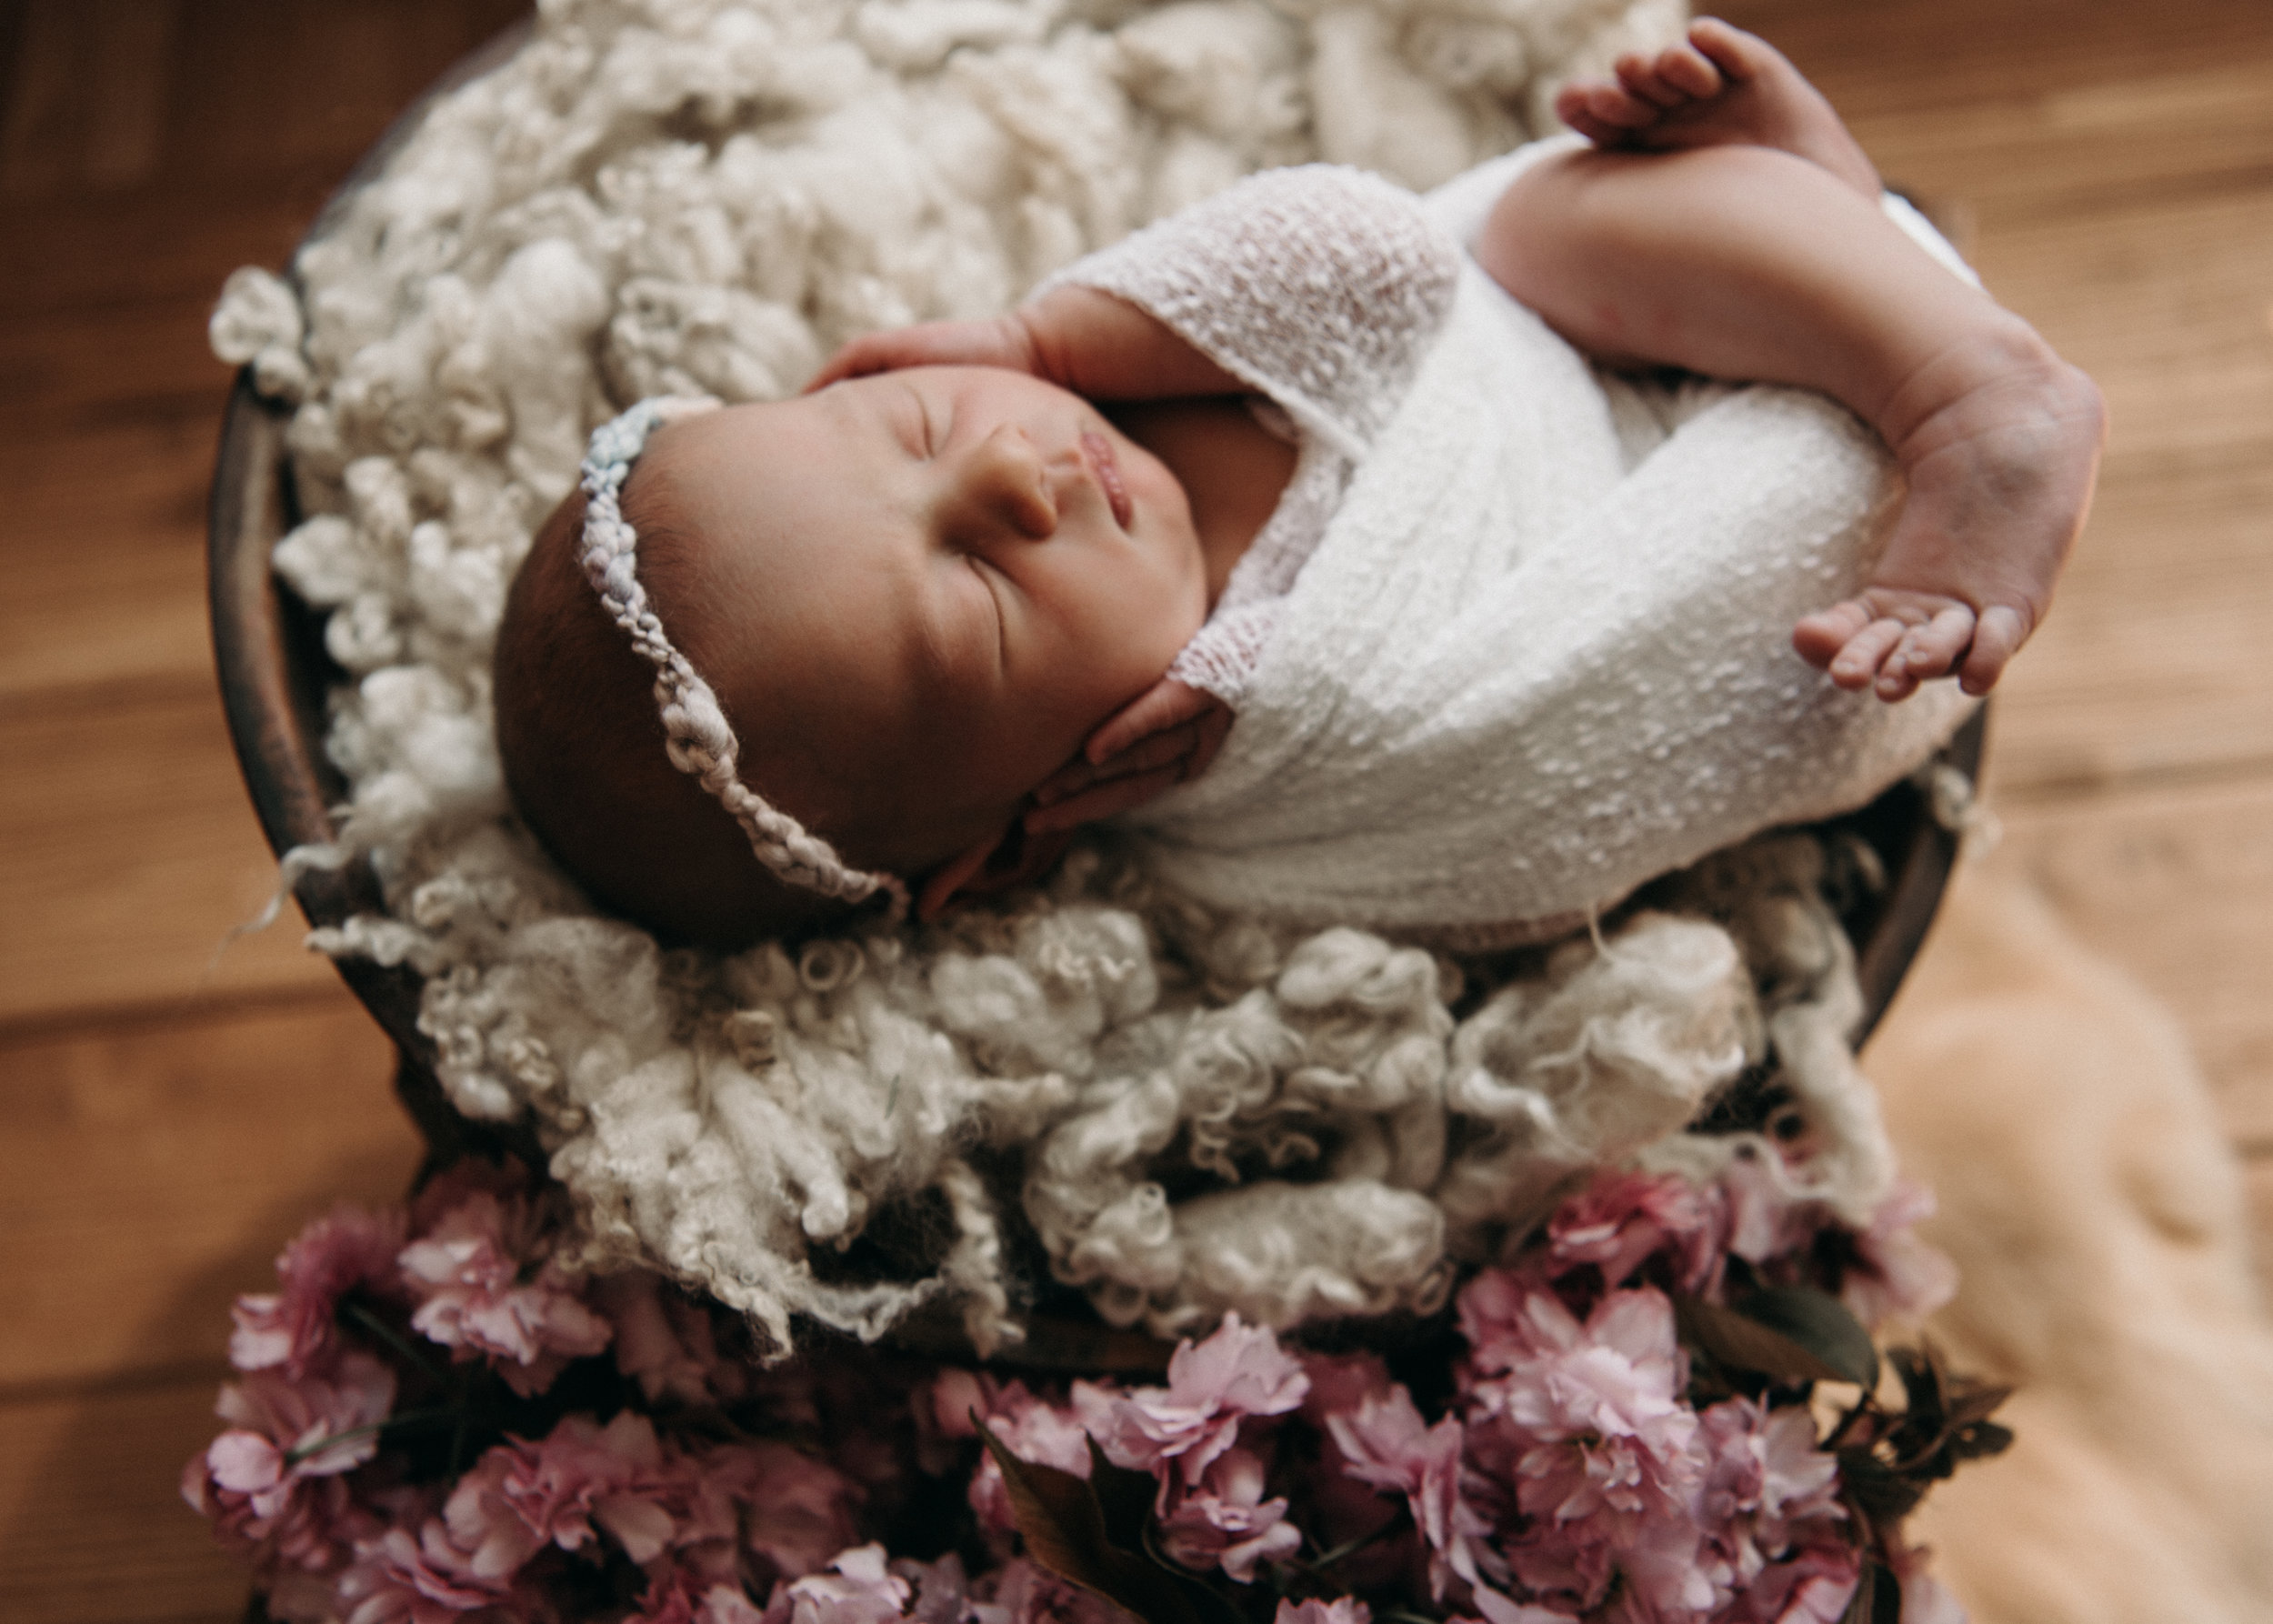 Tessa Newborn Photos - Sunshine Coast BC Photographer - Laura Olson Photography-4631.jpg